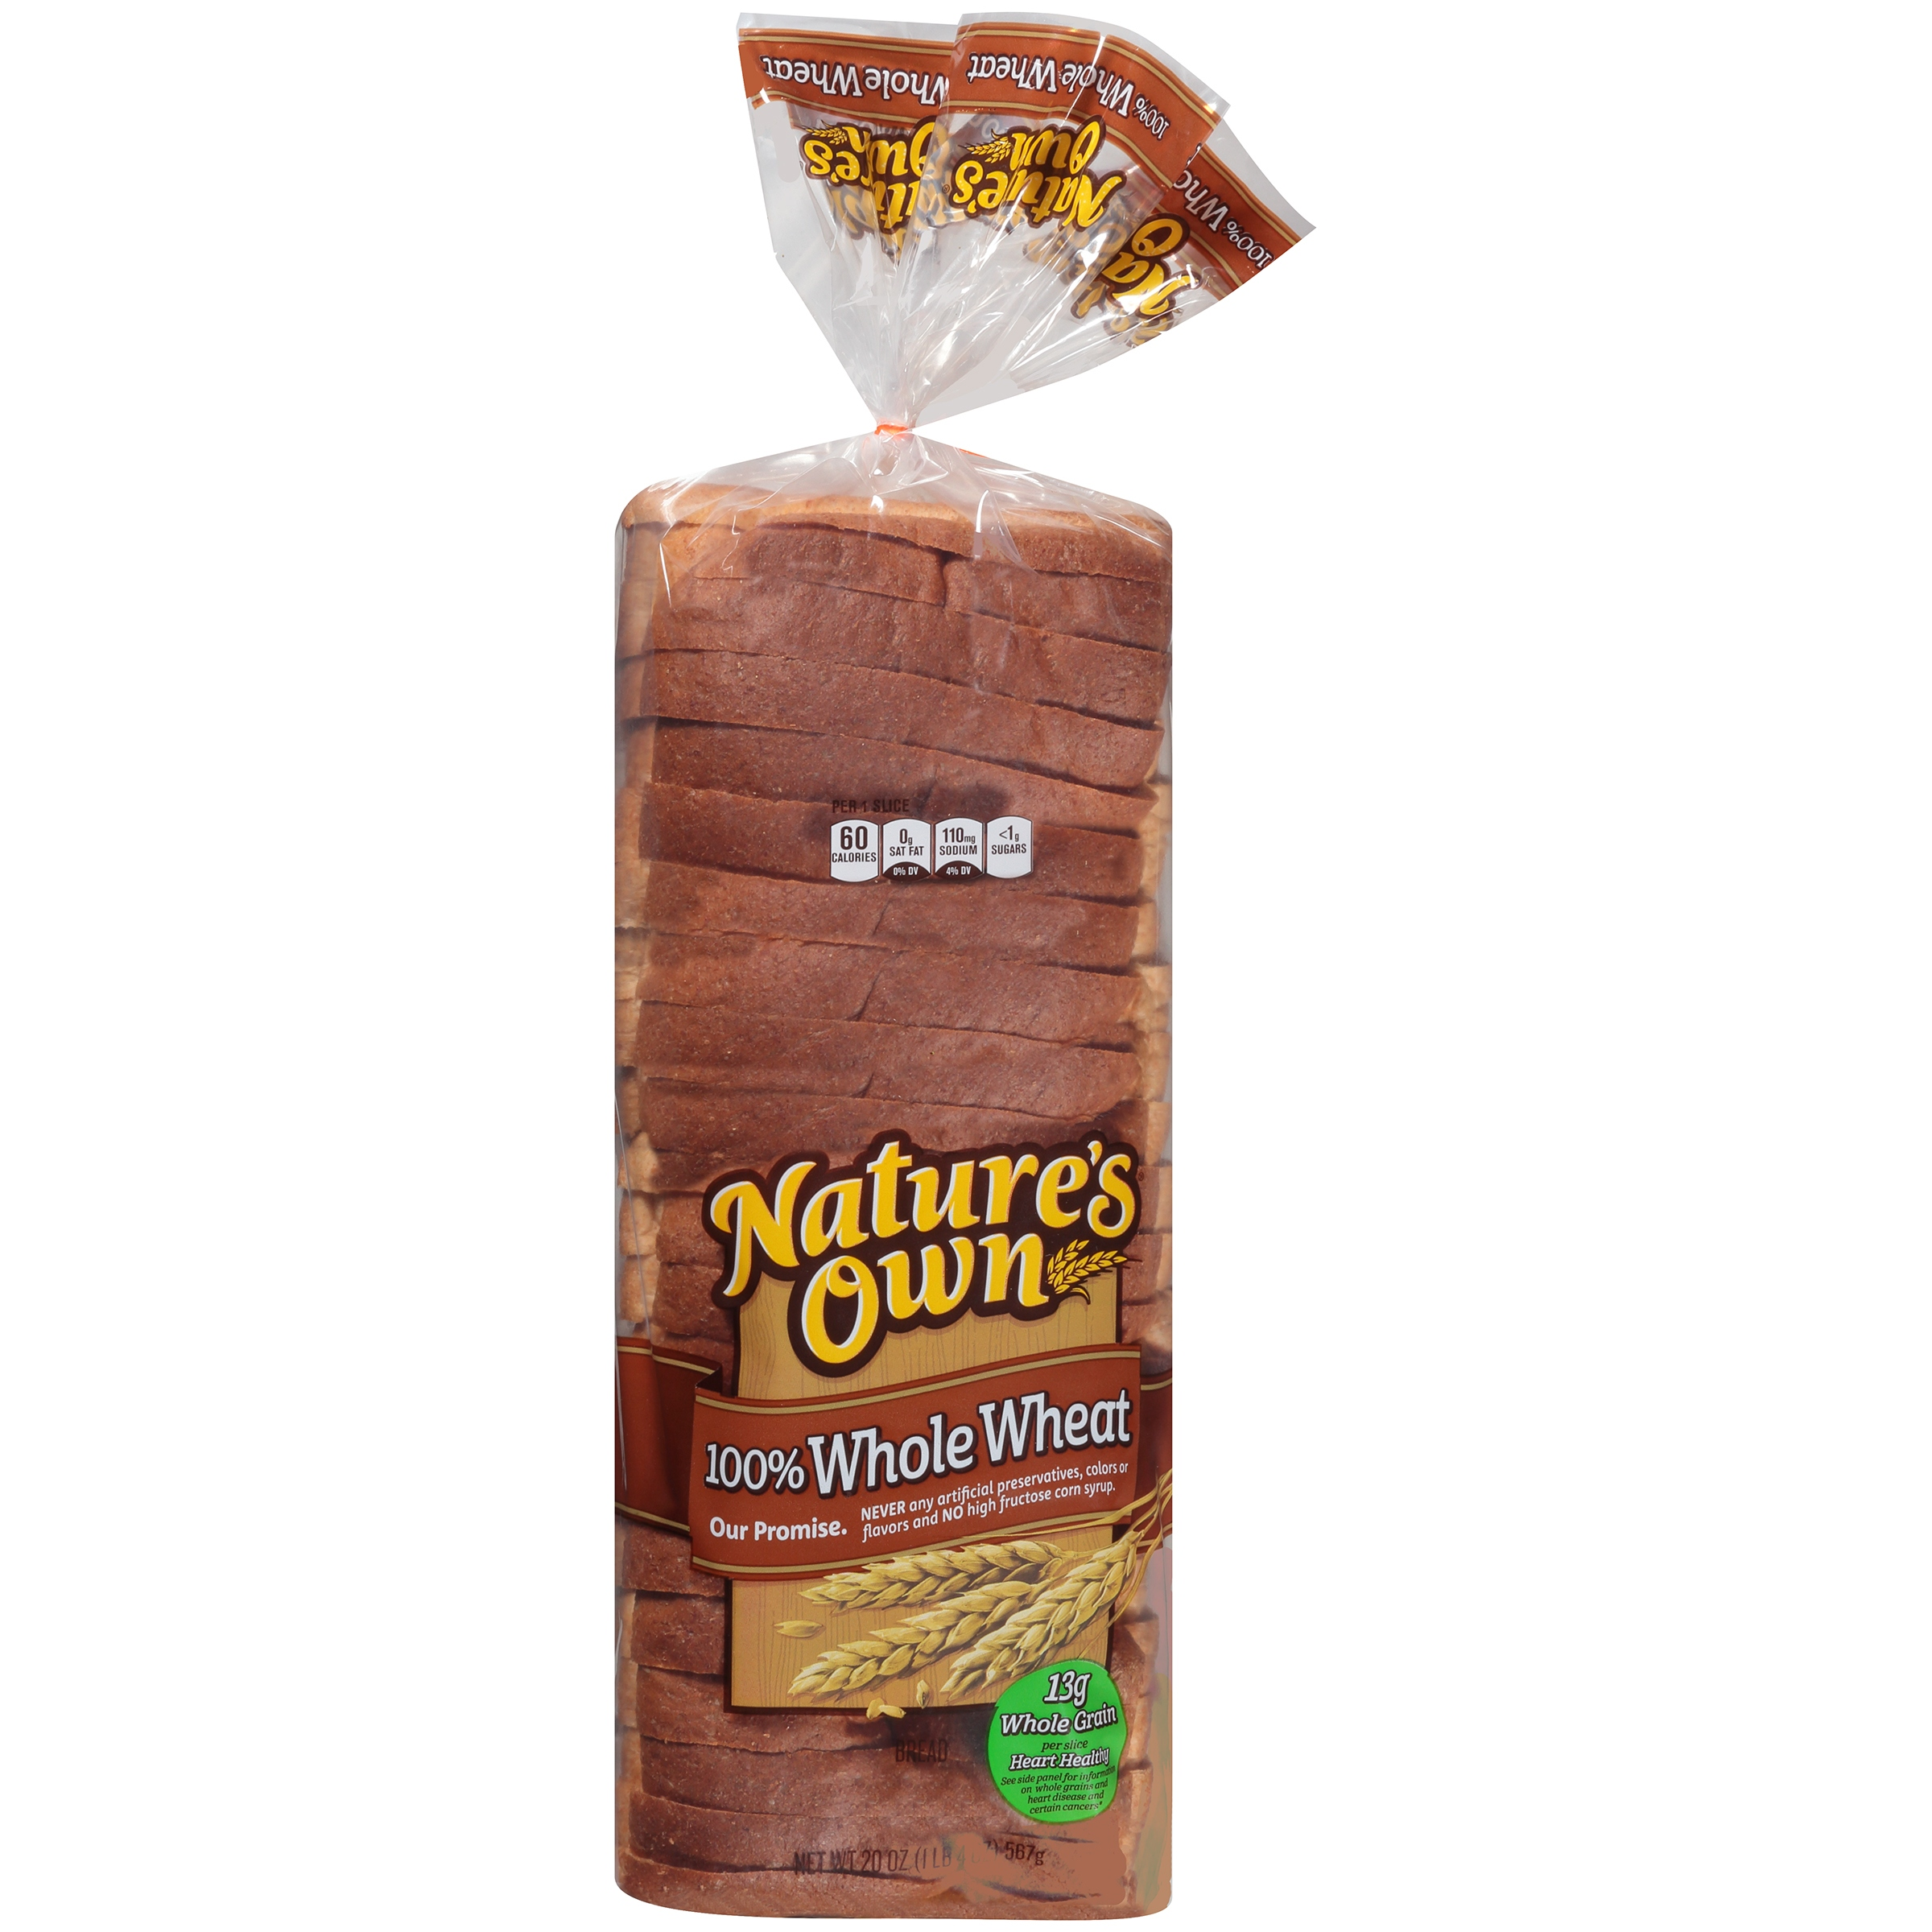 Nature's Own® 100% Whole Wheat Bread 20 oz. Loaf